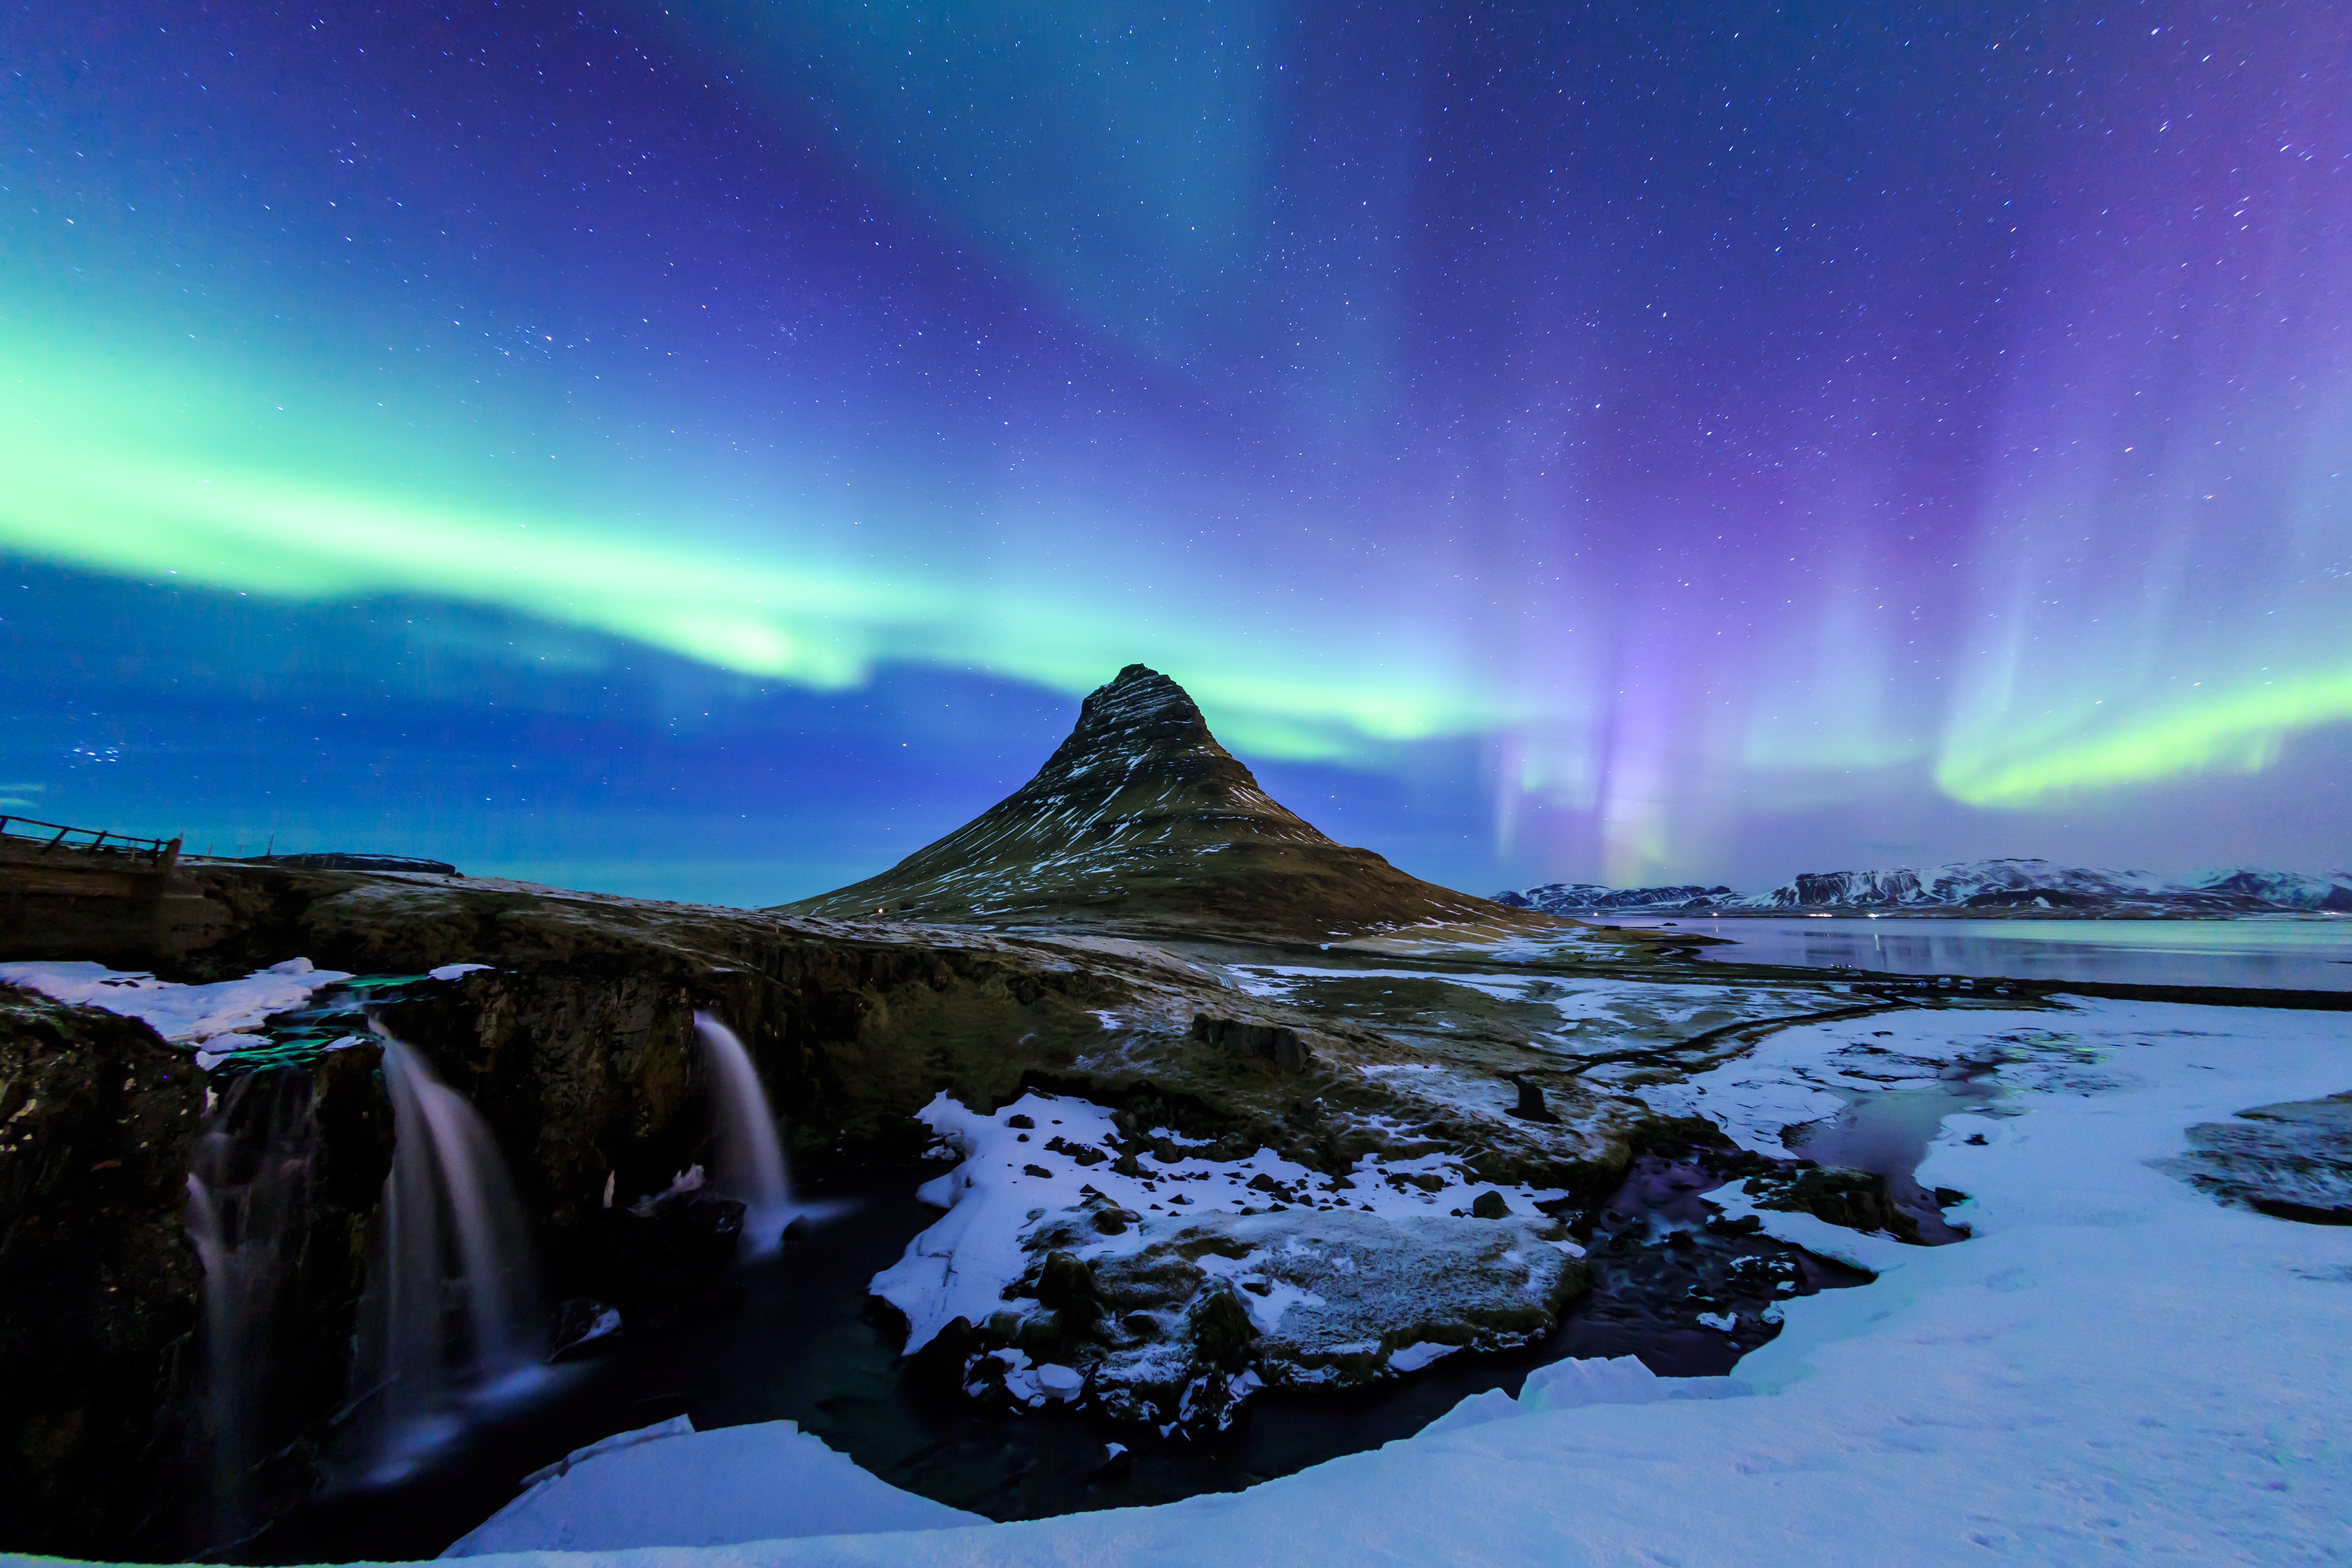 Aurora Borealis Guide: The Best Countries To See The Northern Lights